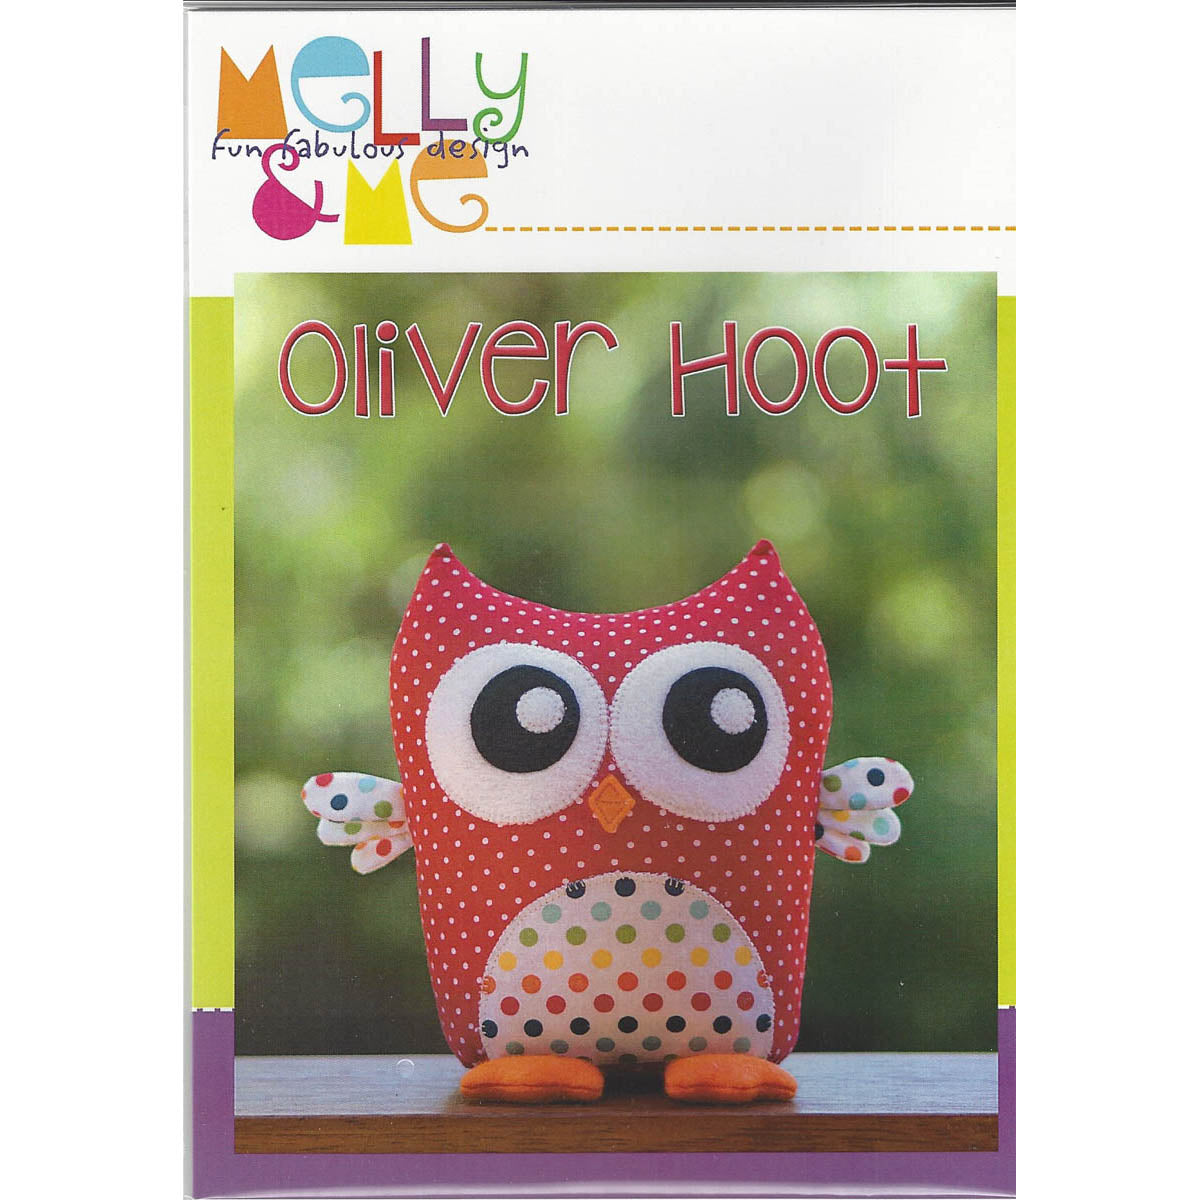 OLIVER HOOT OWL - Soft Toy Pattern - by Australian Designer Melanie McNeice